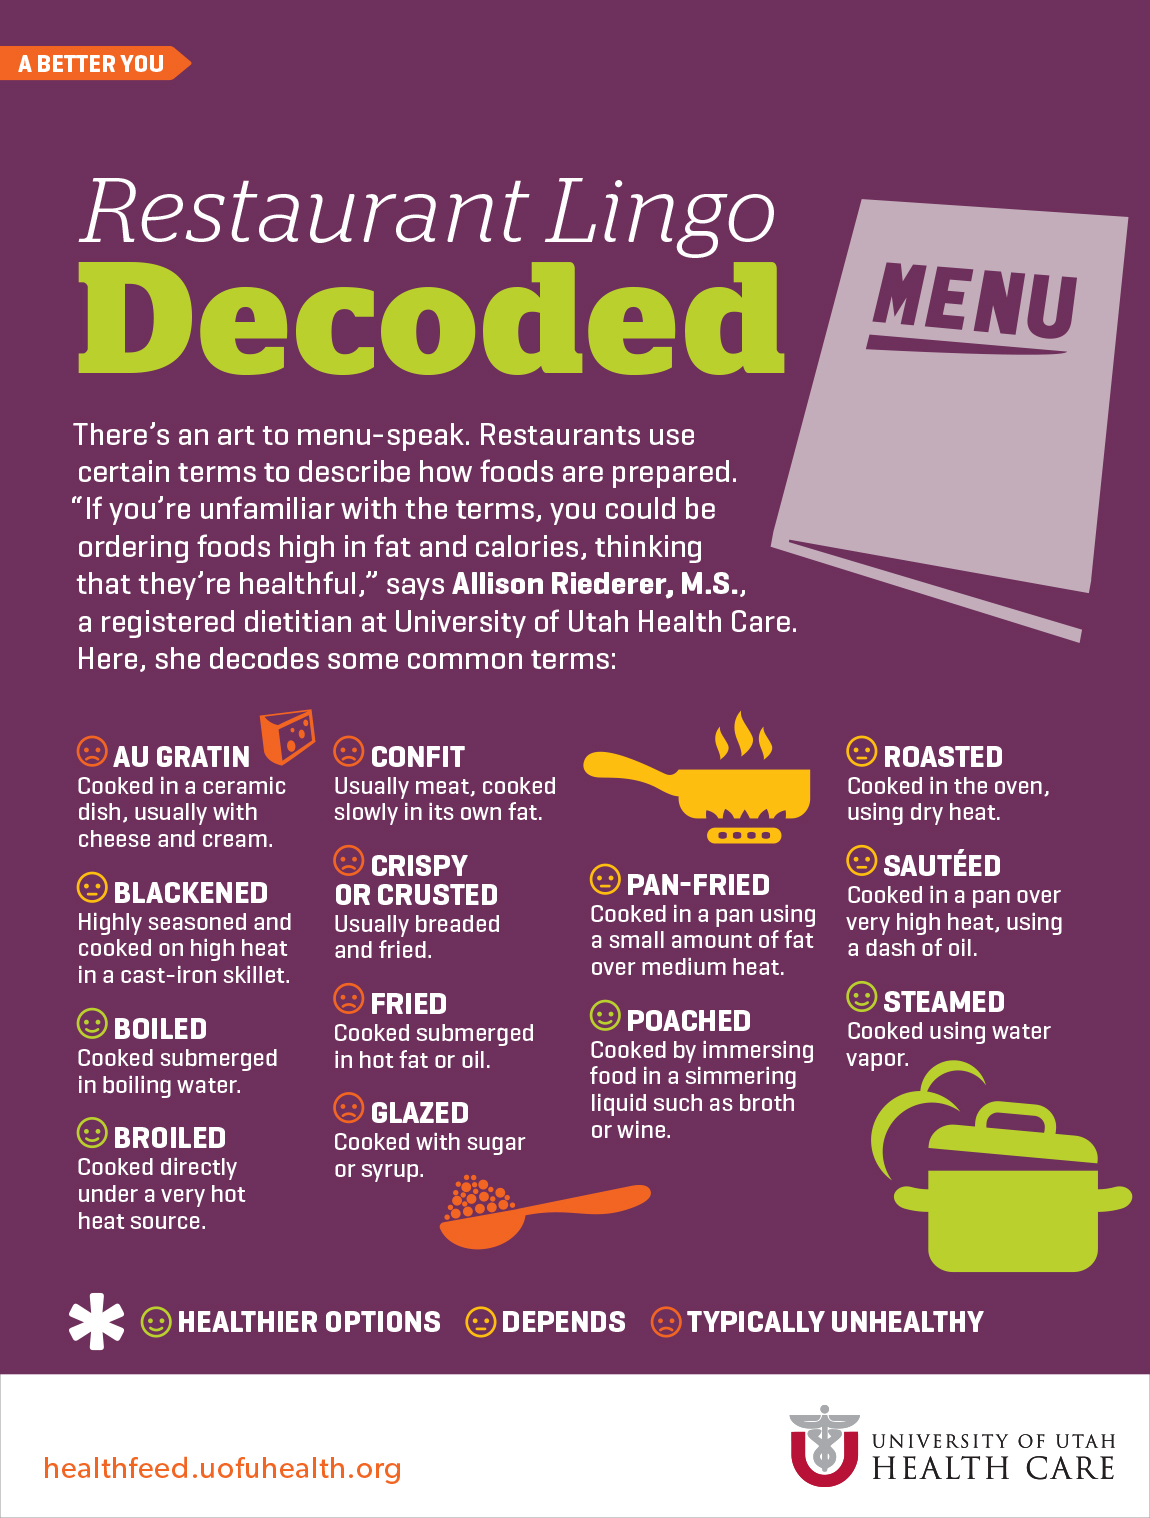 How healthful are some restaurant's fancy foods? Find out in this infographic.